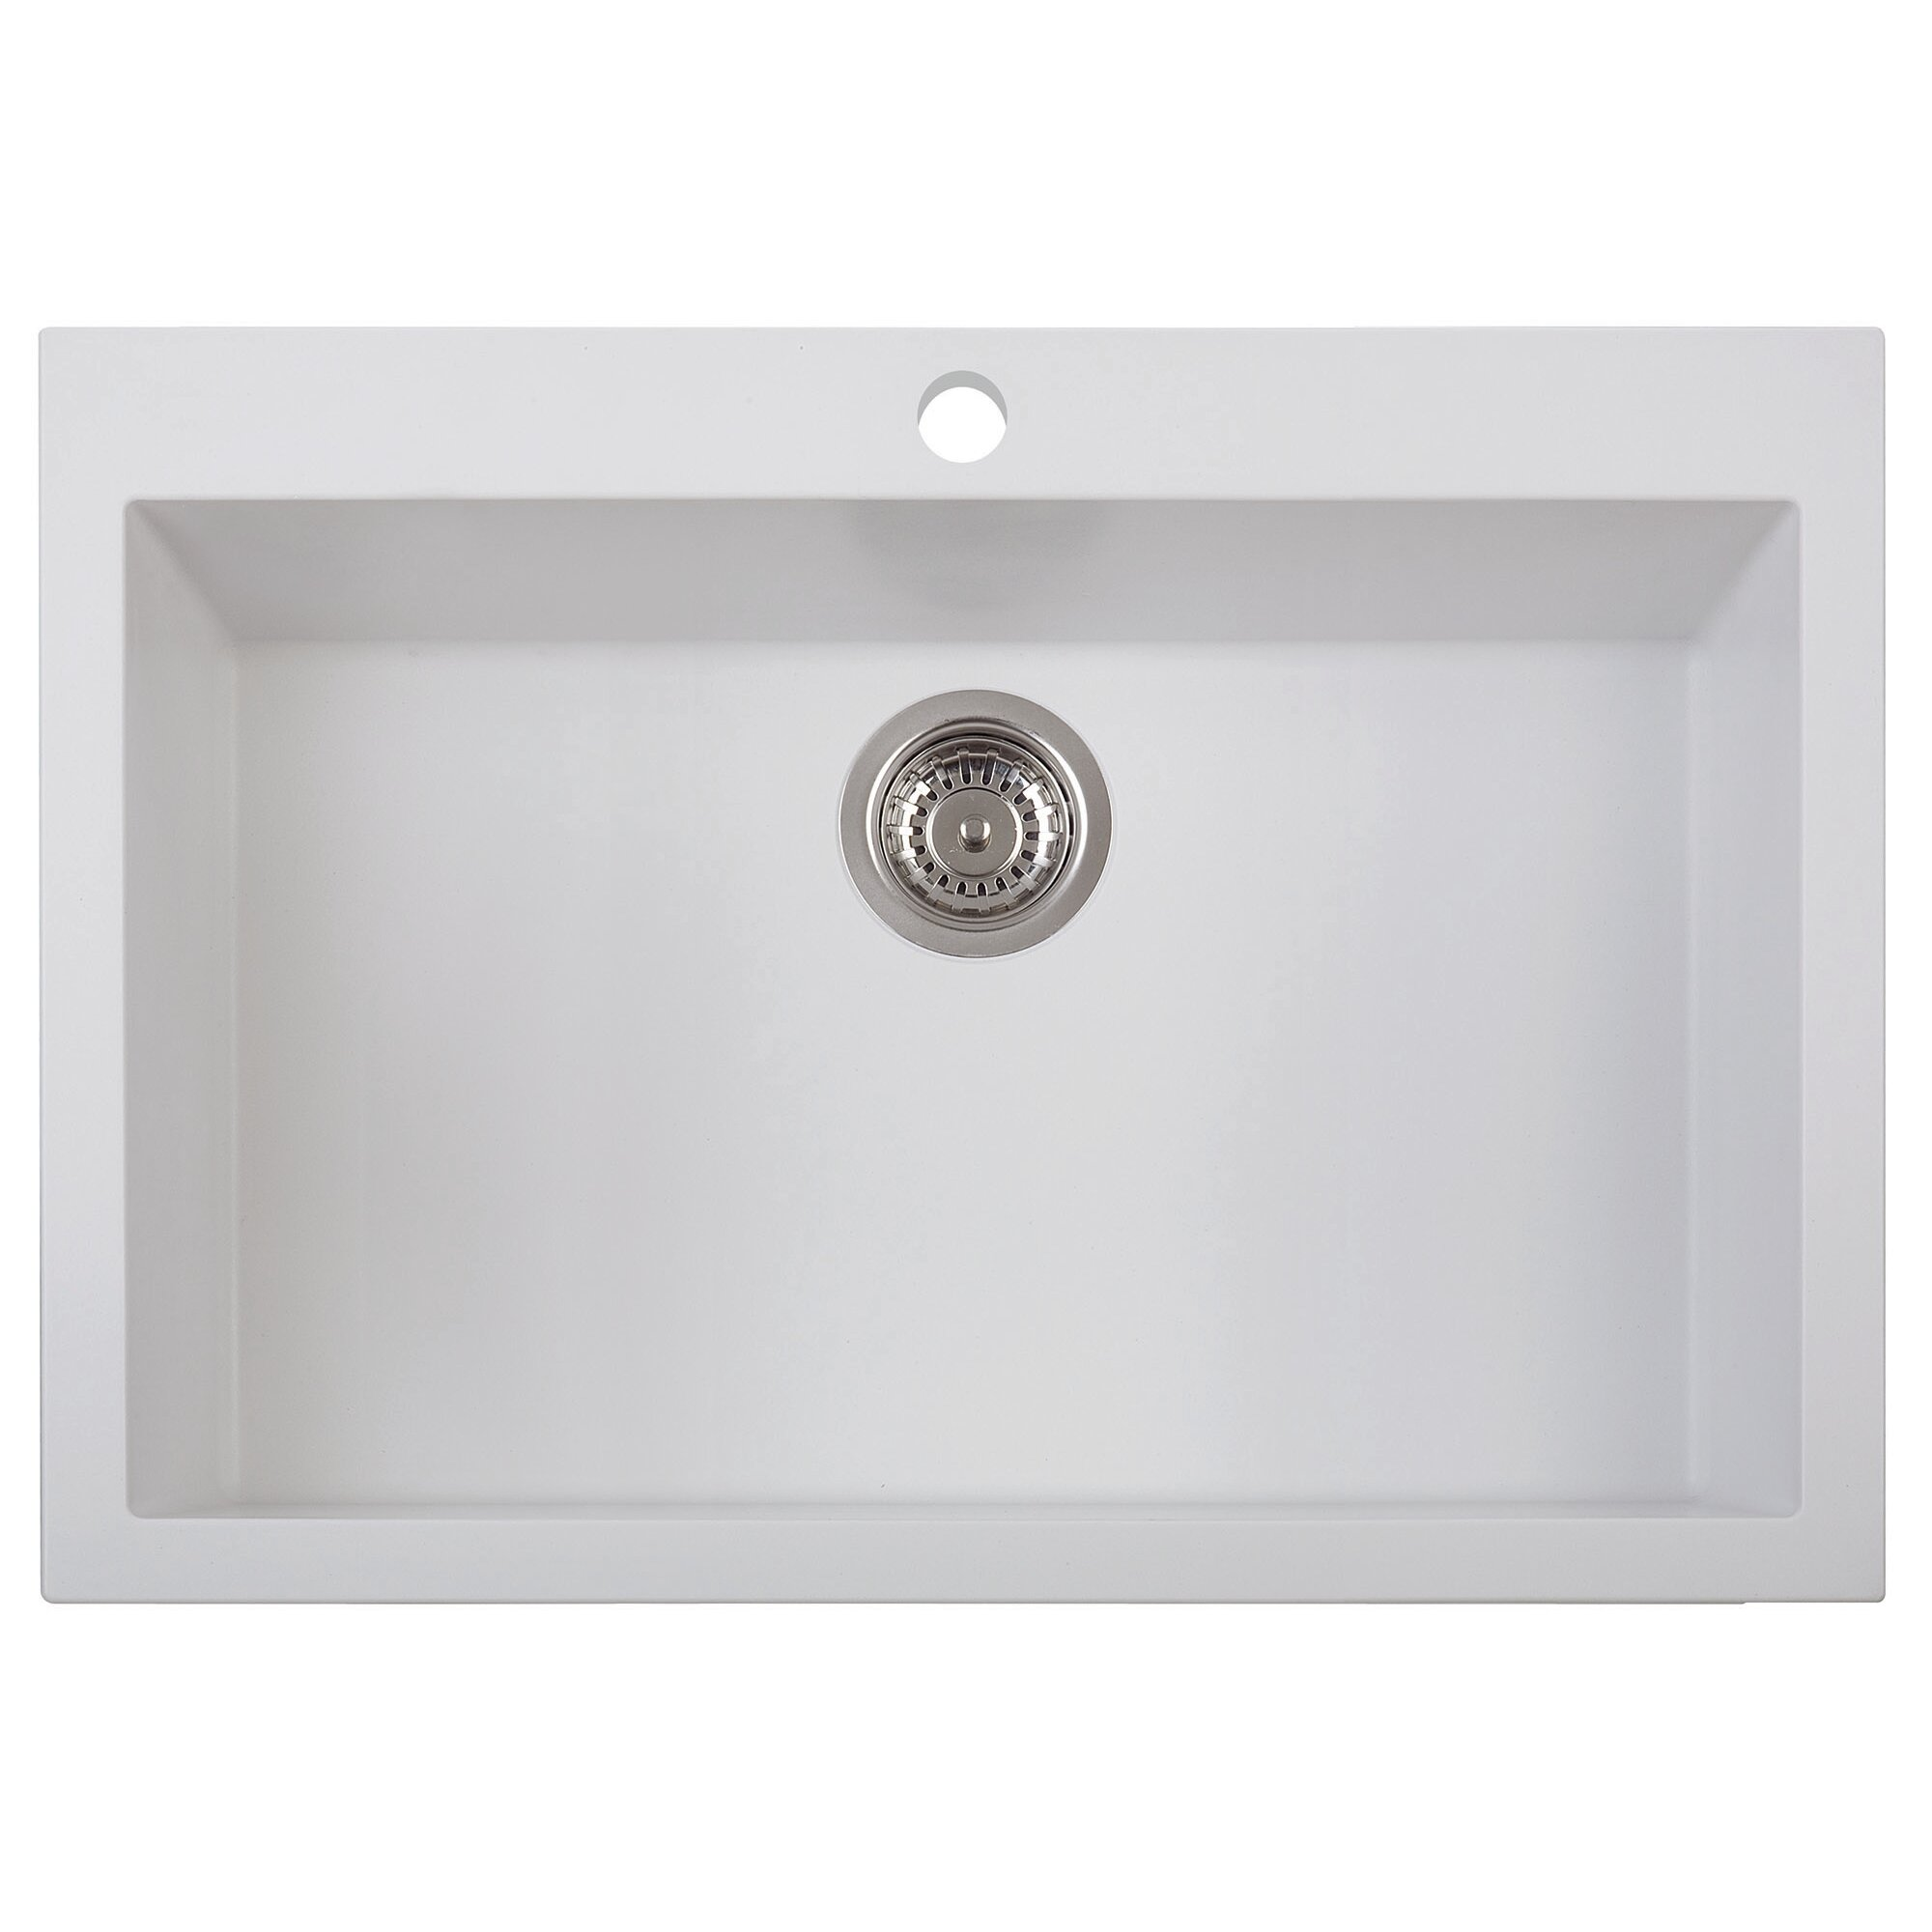 30 x 20 drop in single bowl kitchen sink - White Single Basin Kitchen Sink